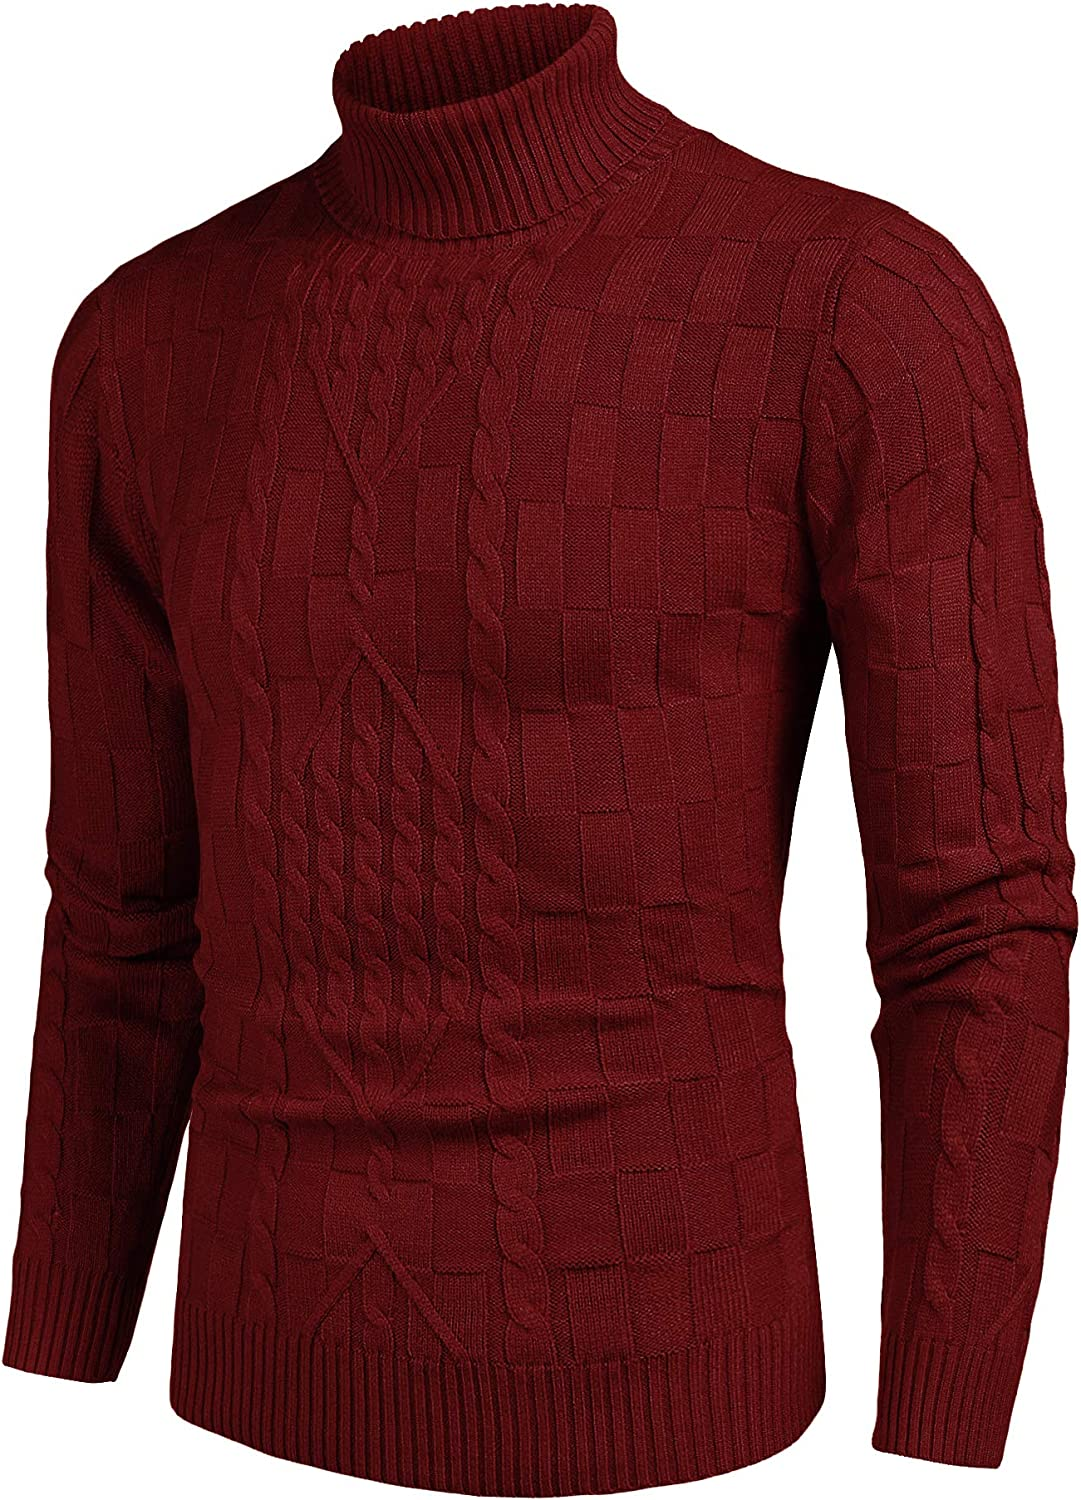 COOFANDY Men's Slim Fit Turtleneck Sweater Casual Cable Knit Pullover Sweaters